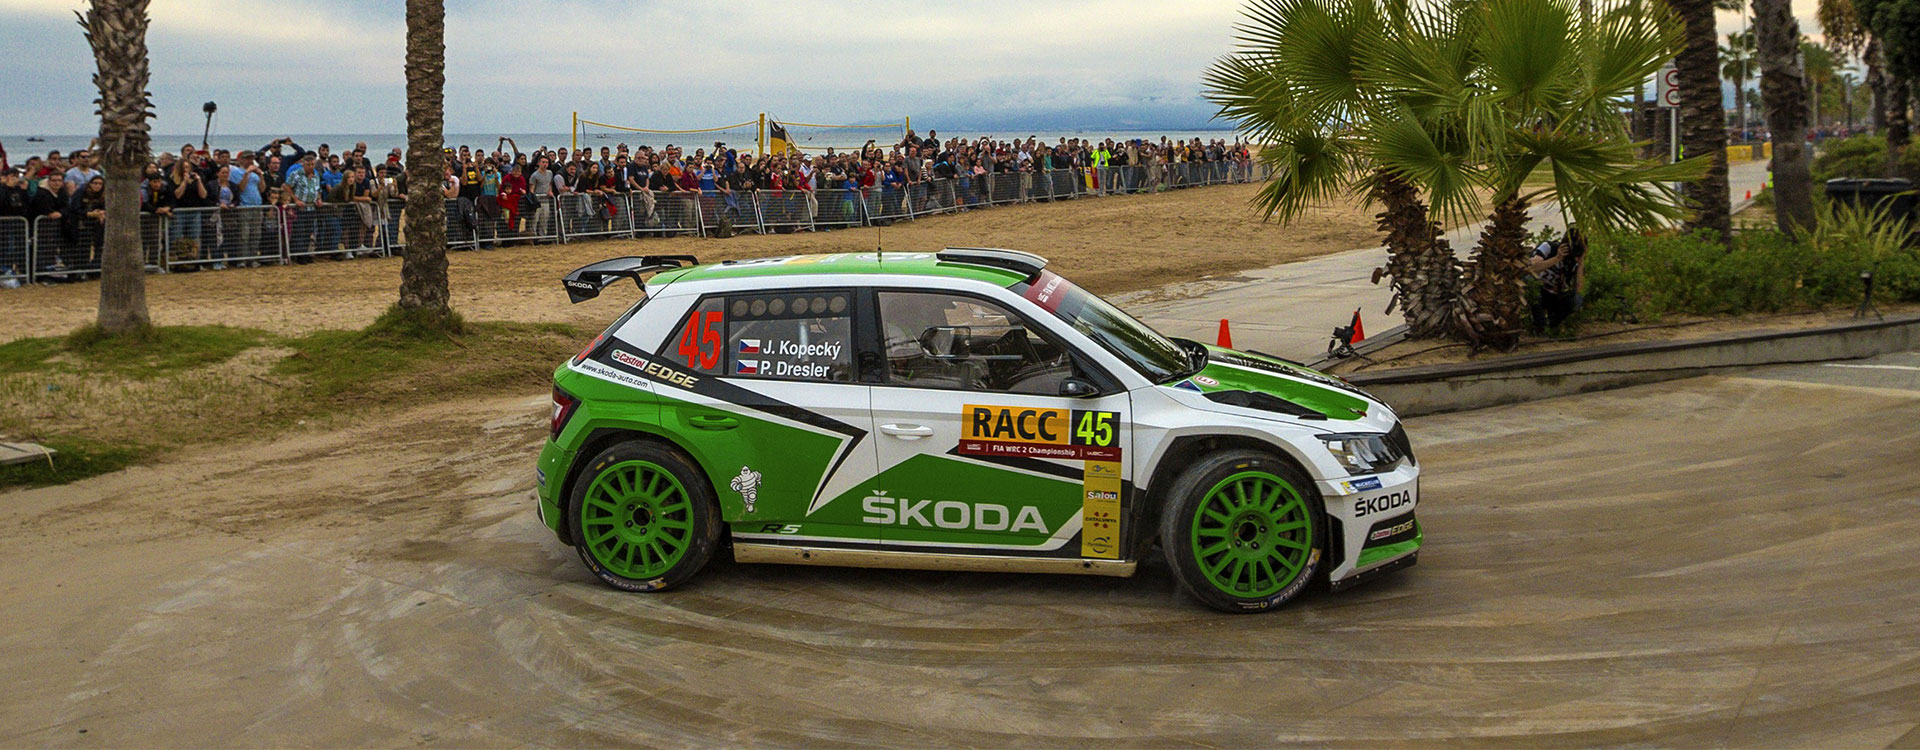 WRC Spain: ŠKODA enters crucial phase of title race